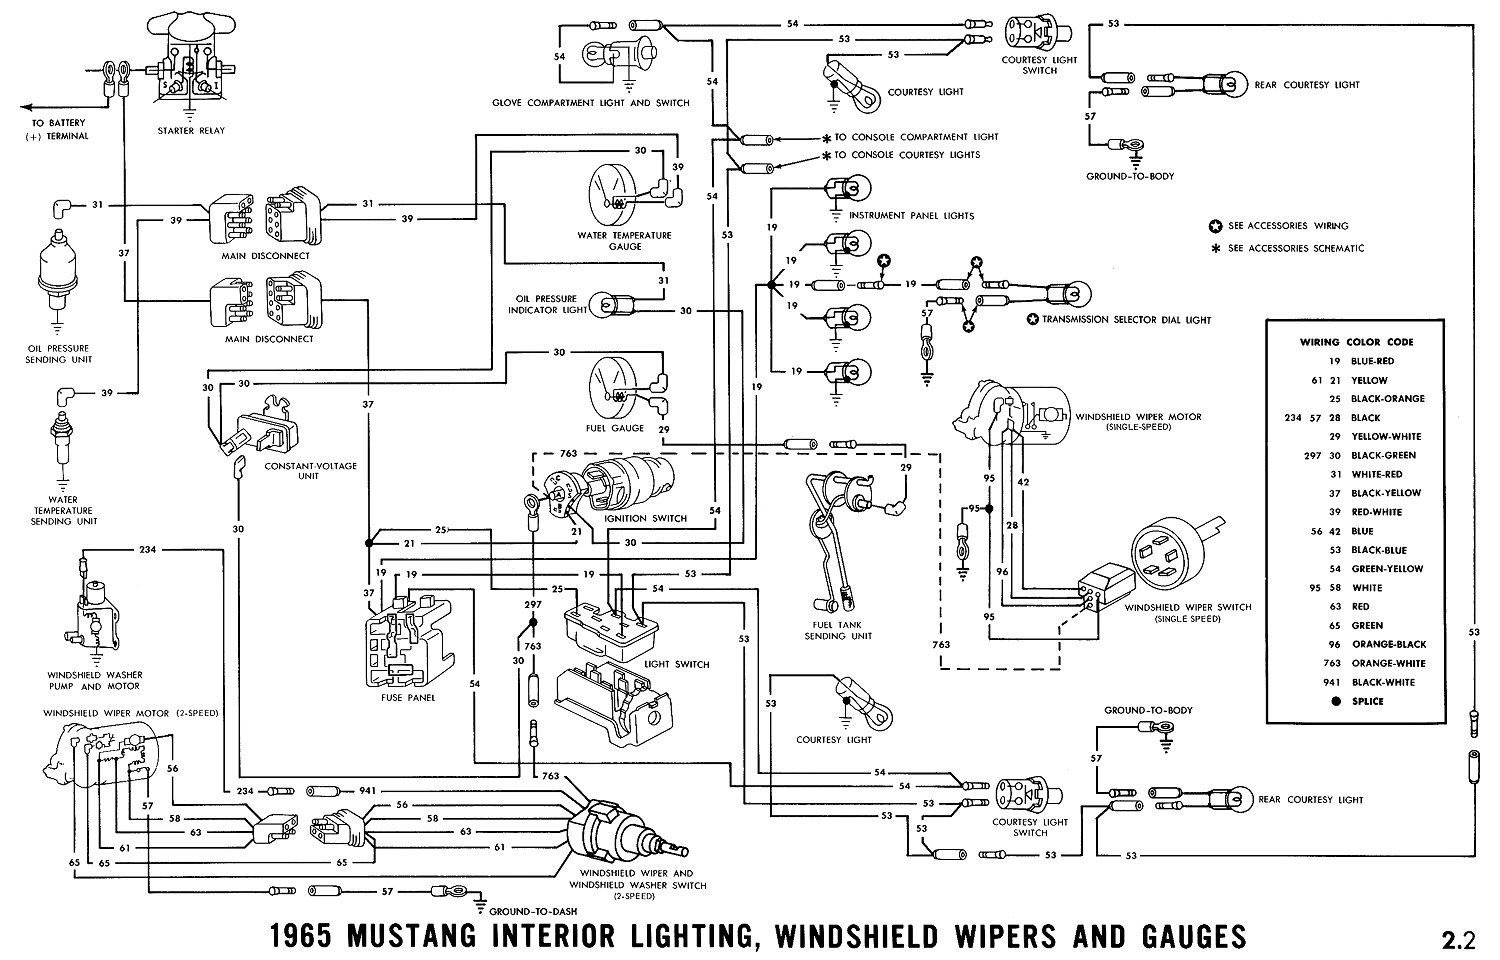 1965g 65 mustang wiper wiring diagram detailed schematics diagram